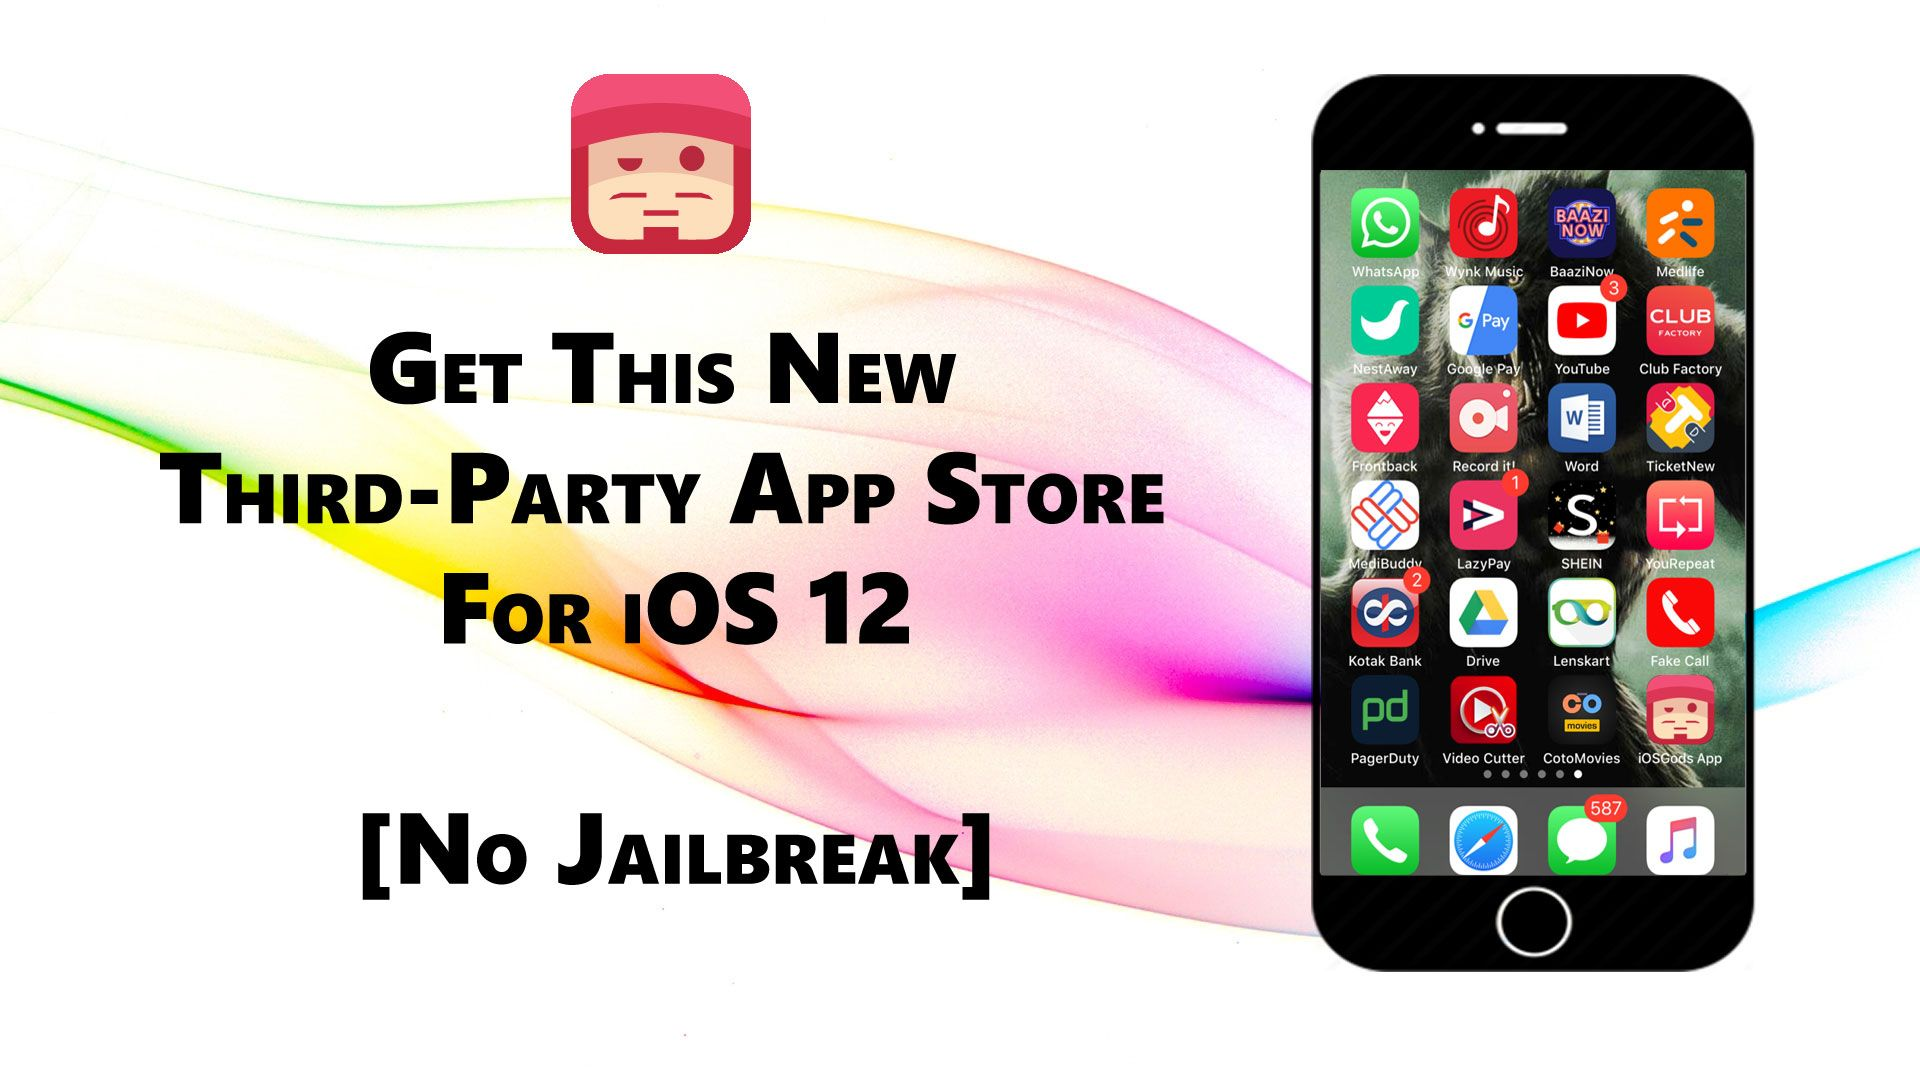 Download & install new third party store for iOS 12 no